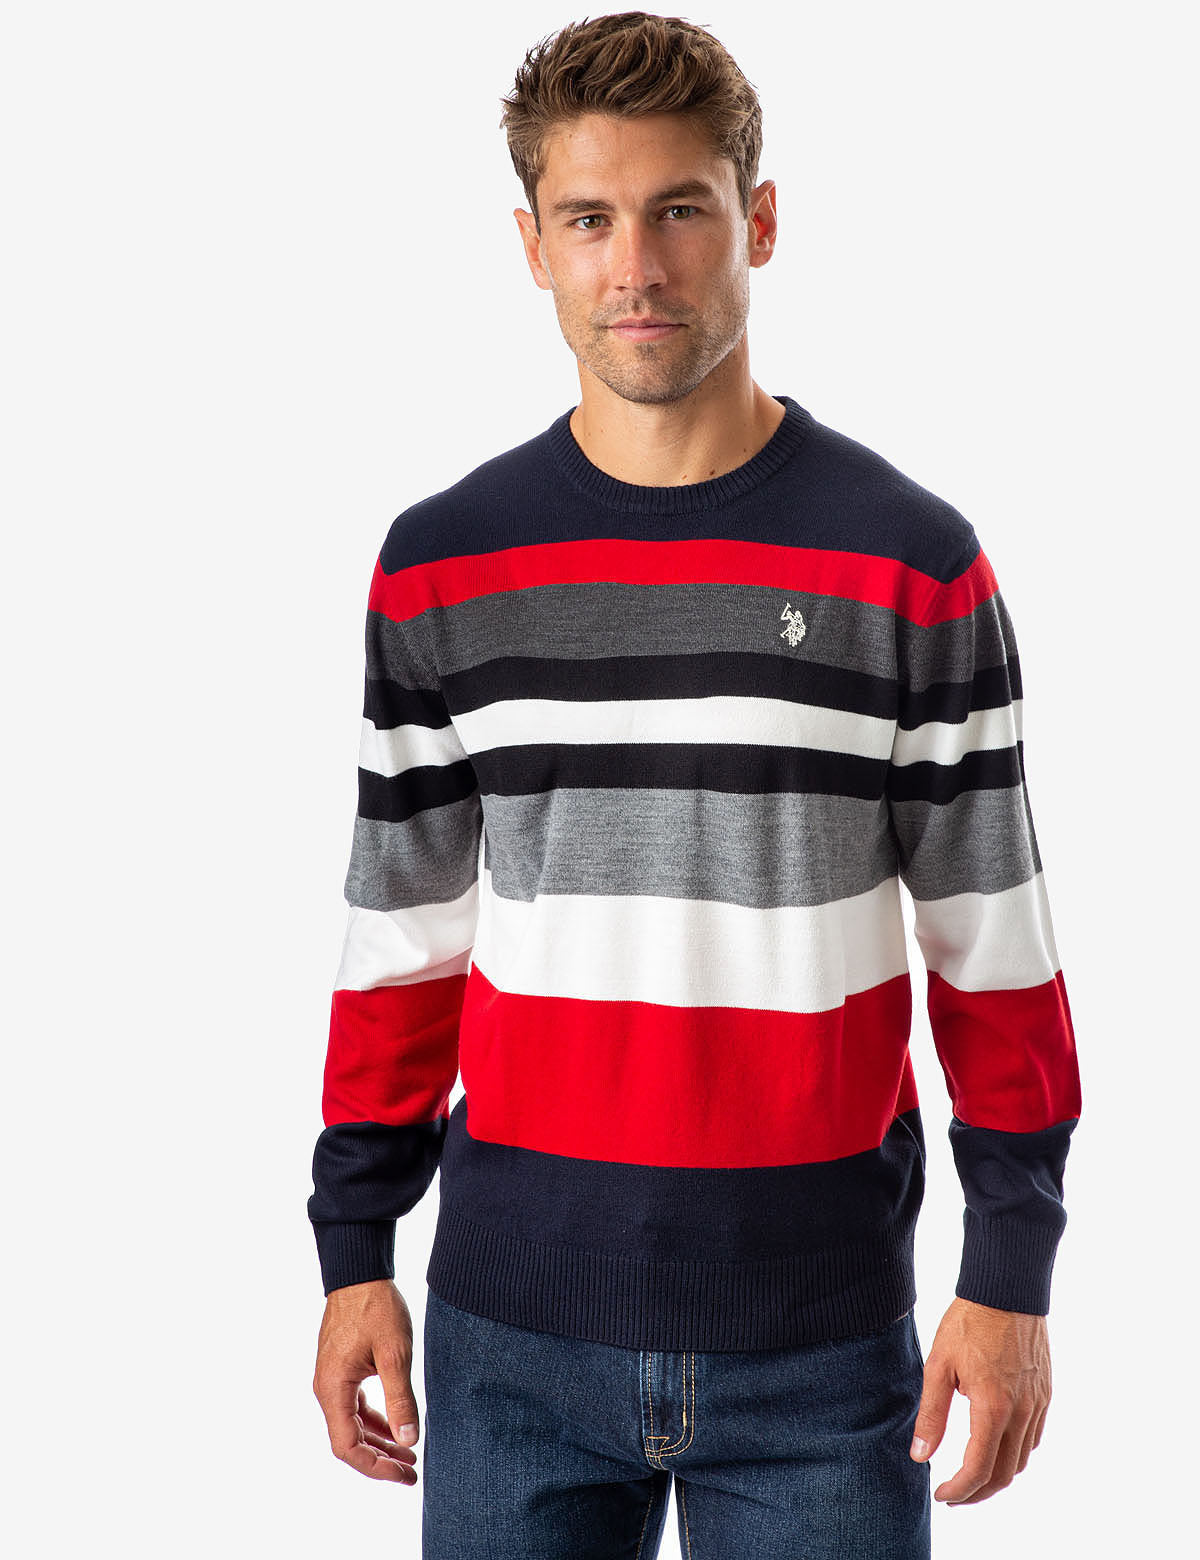 MULTICOLOR STRIPED CREW NECK SWEATER - U.S. Polo Assn.